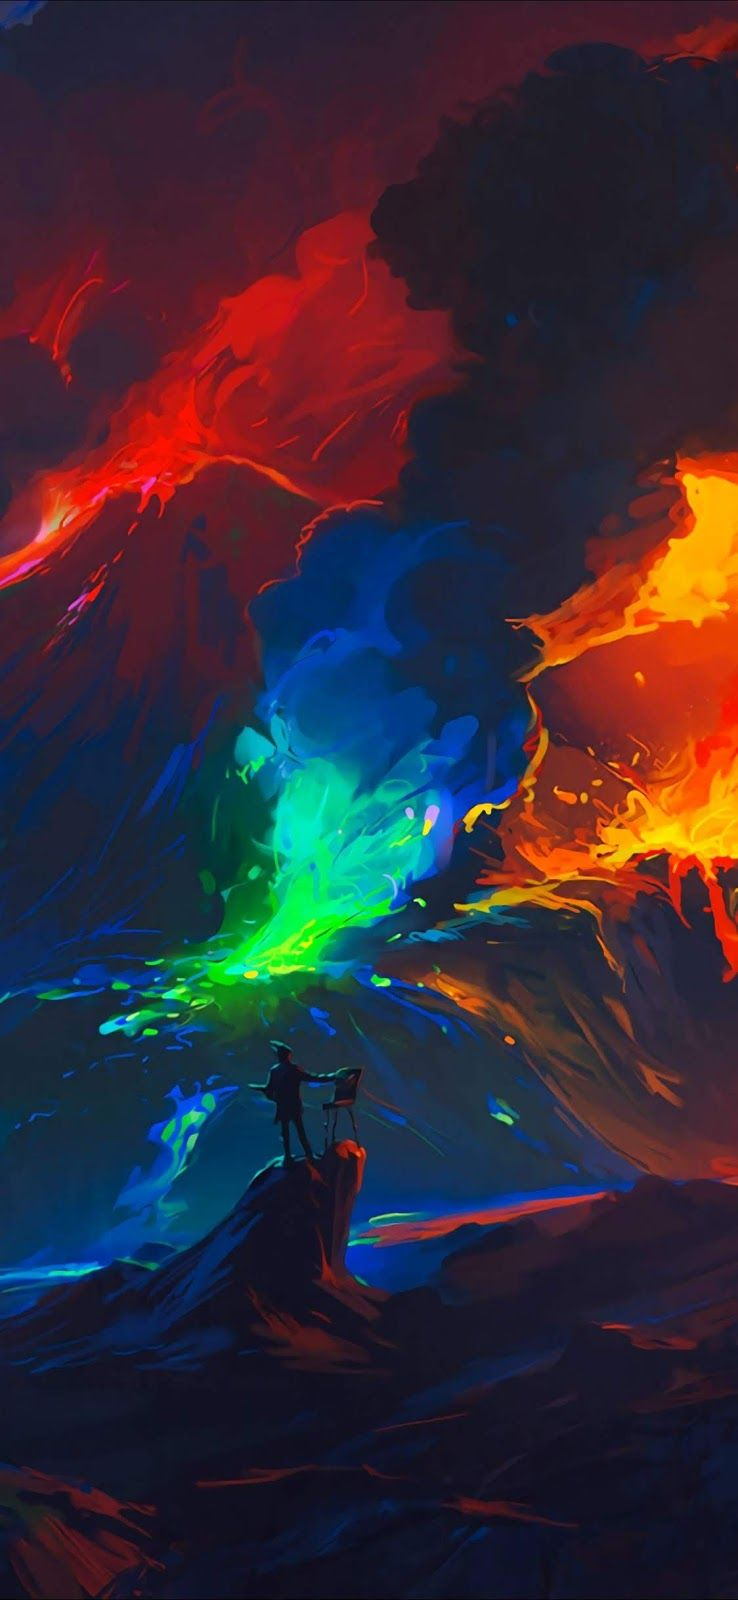 Colorful (iPhone X) Imagens aleatórias, Wallpaper hd